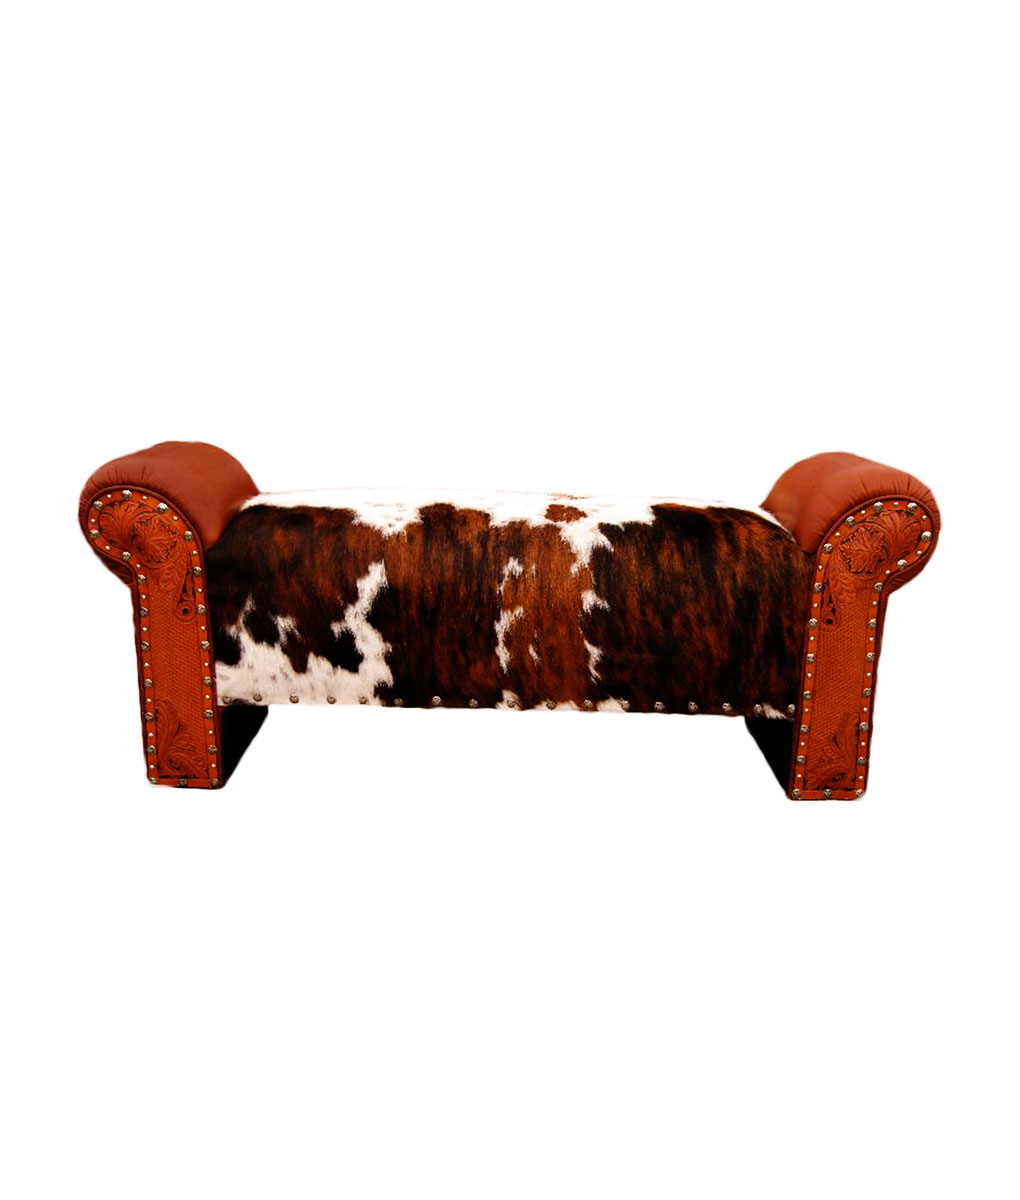 Cowhide, tooled leather and silver tacks on western bench by Rustic Artistry